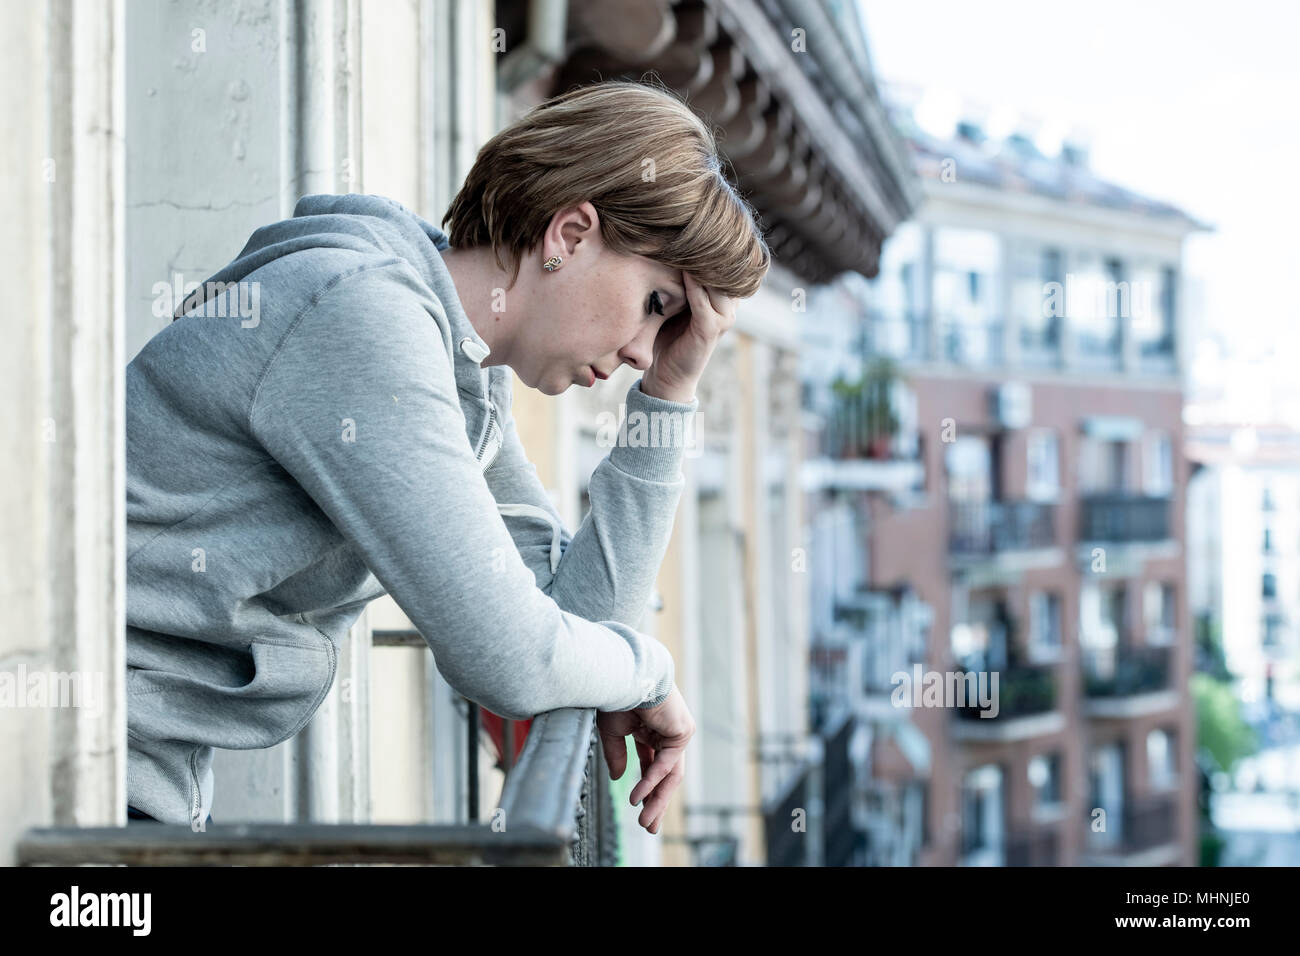 young attractive unhappy depressed lonely woman looking down hopeless on the balcony at home. having feelings of frustration, dissatisfaction, anxiety - Stock Image